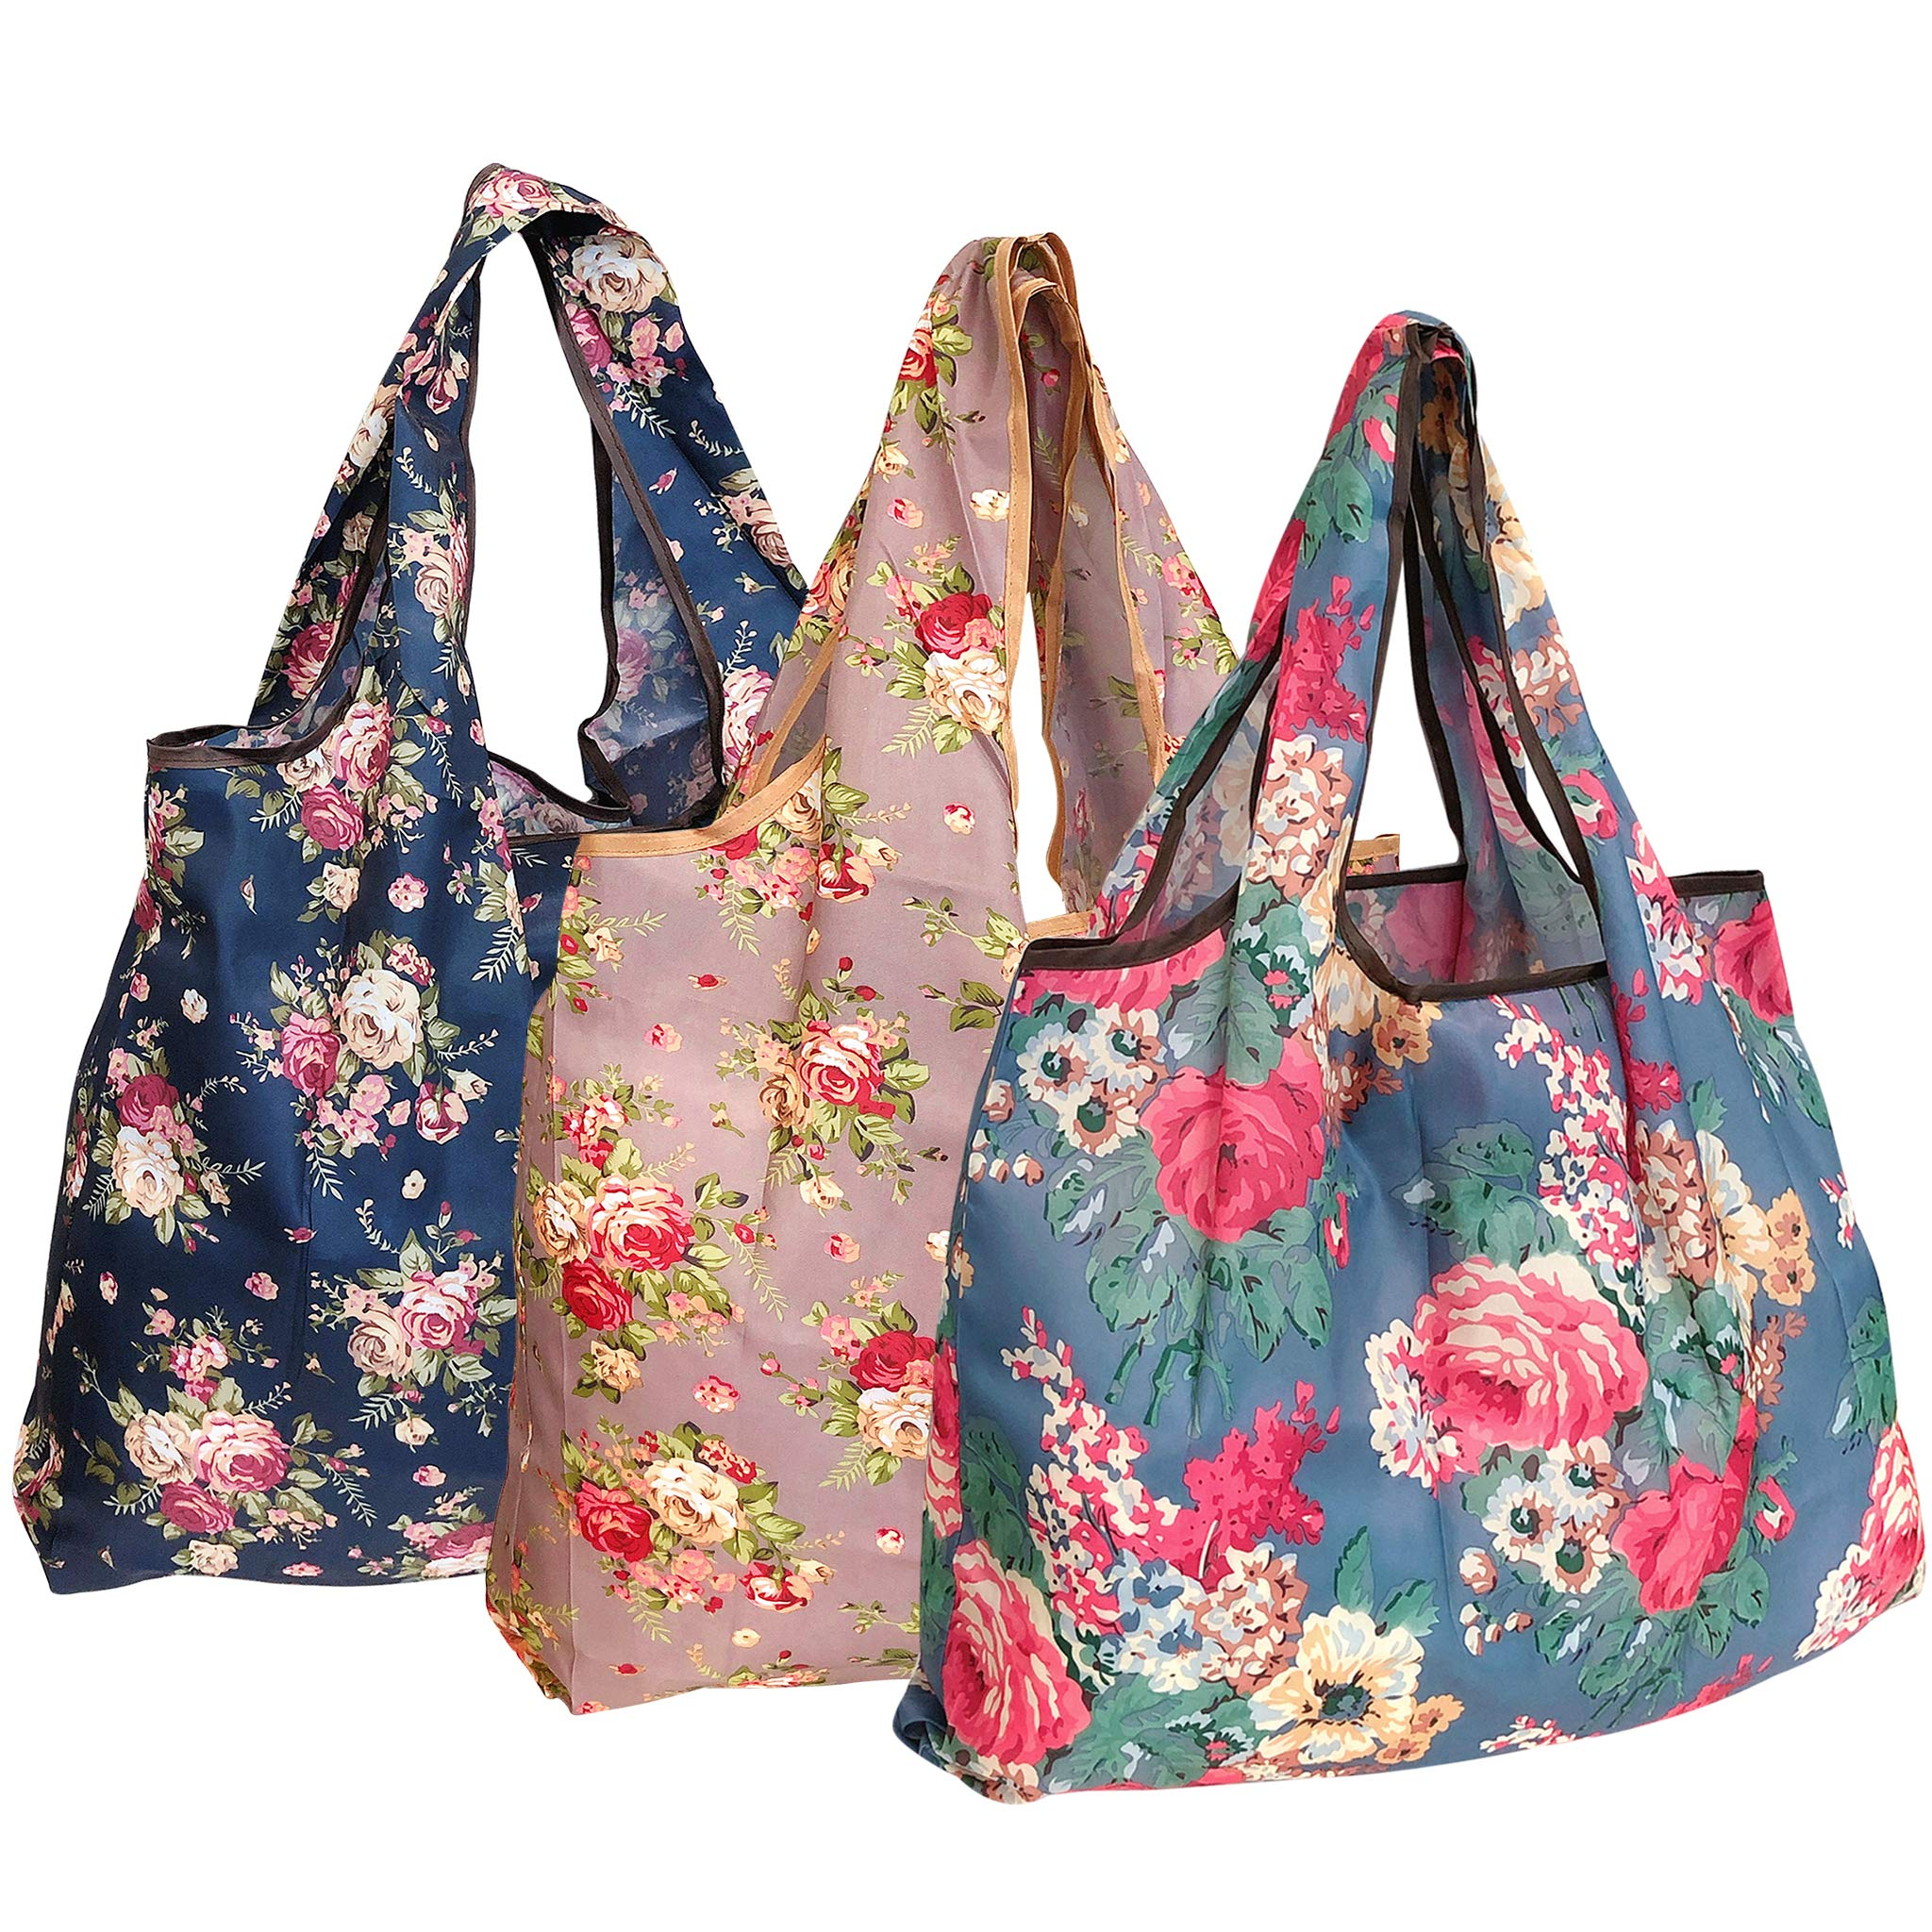 Wrapables A72043c Eco-Friendly Large Reusable Shopping Bags, Foldable, Lightweight, Durable, Flower Bouquet